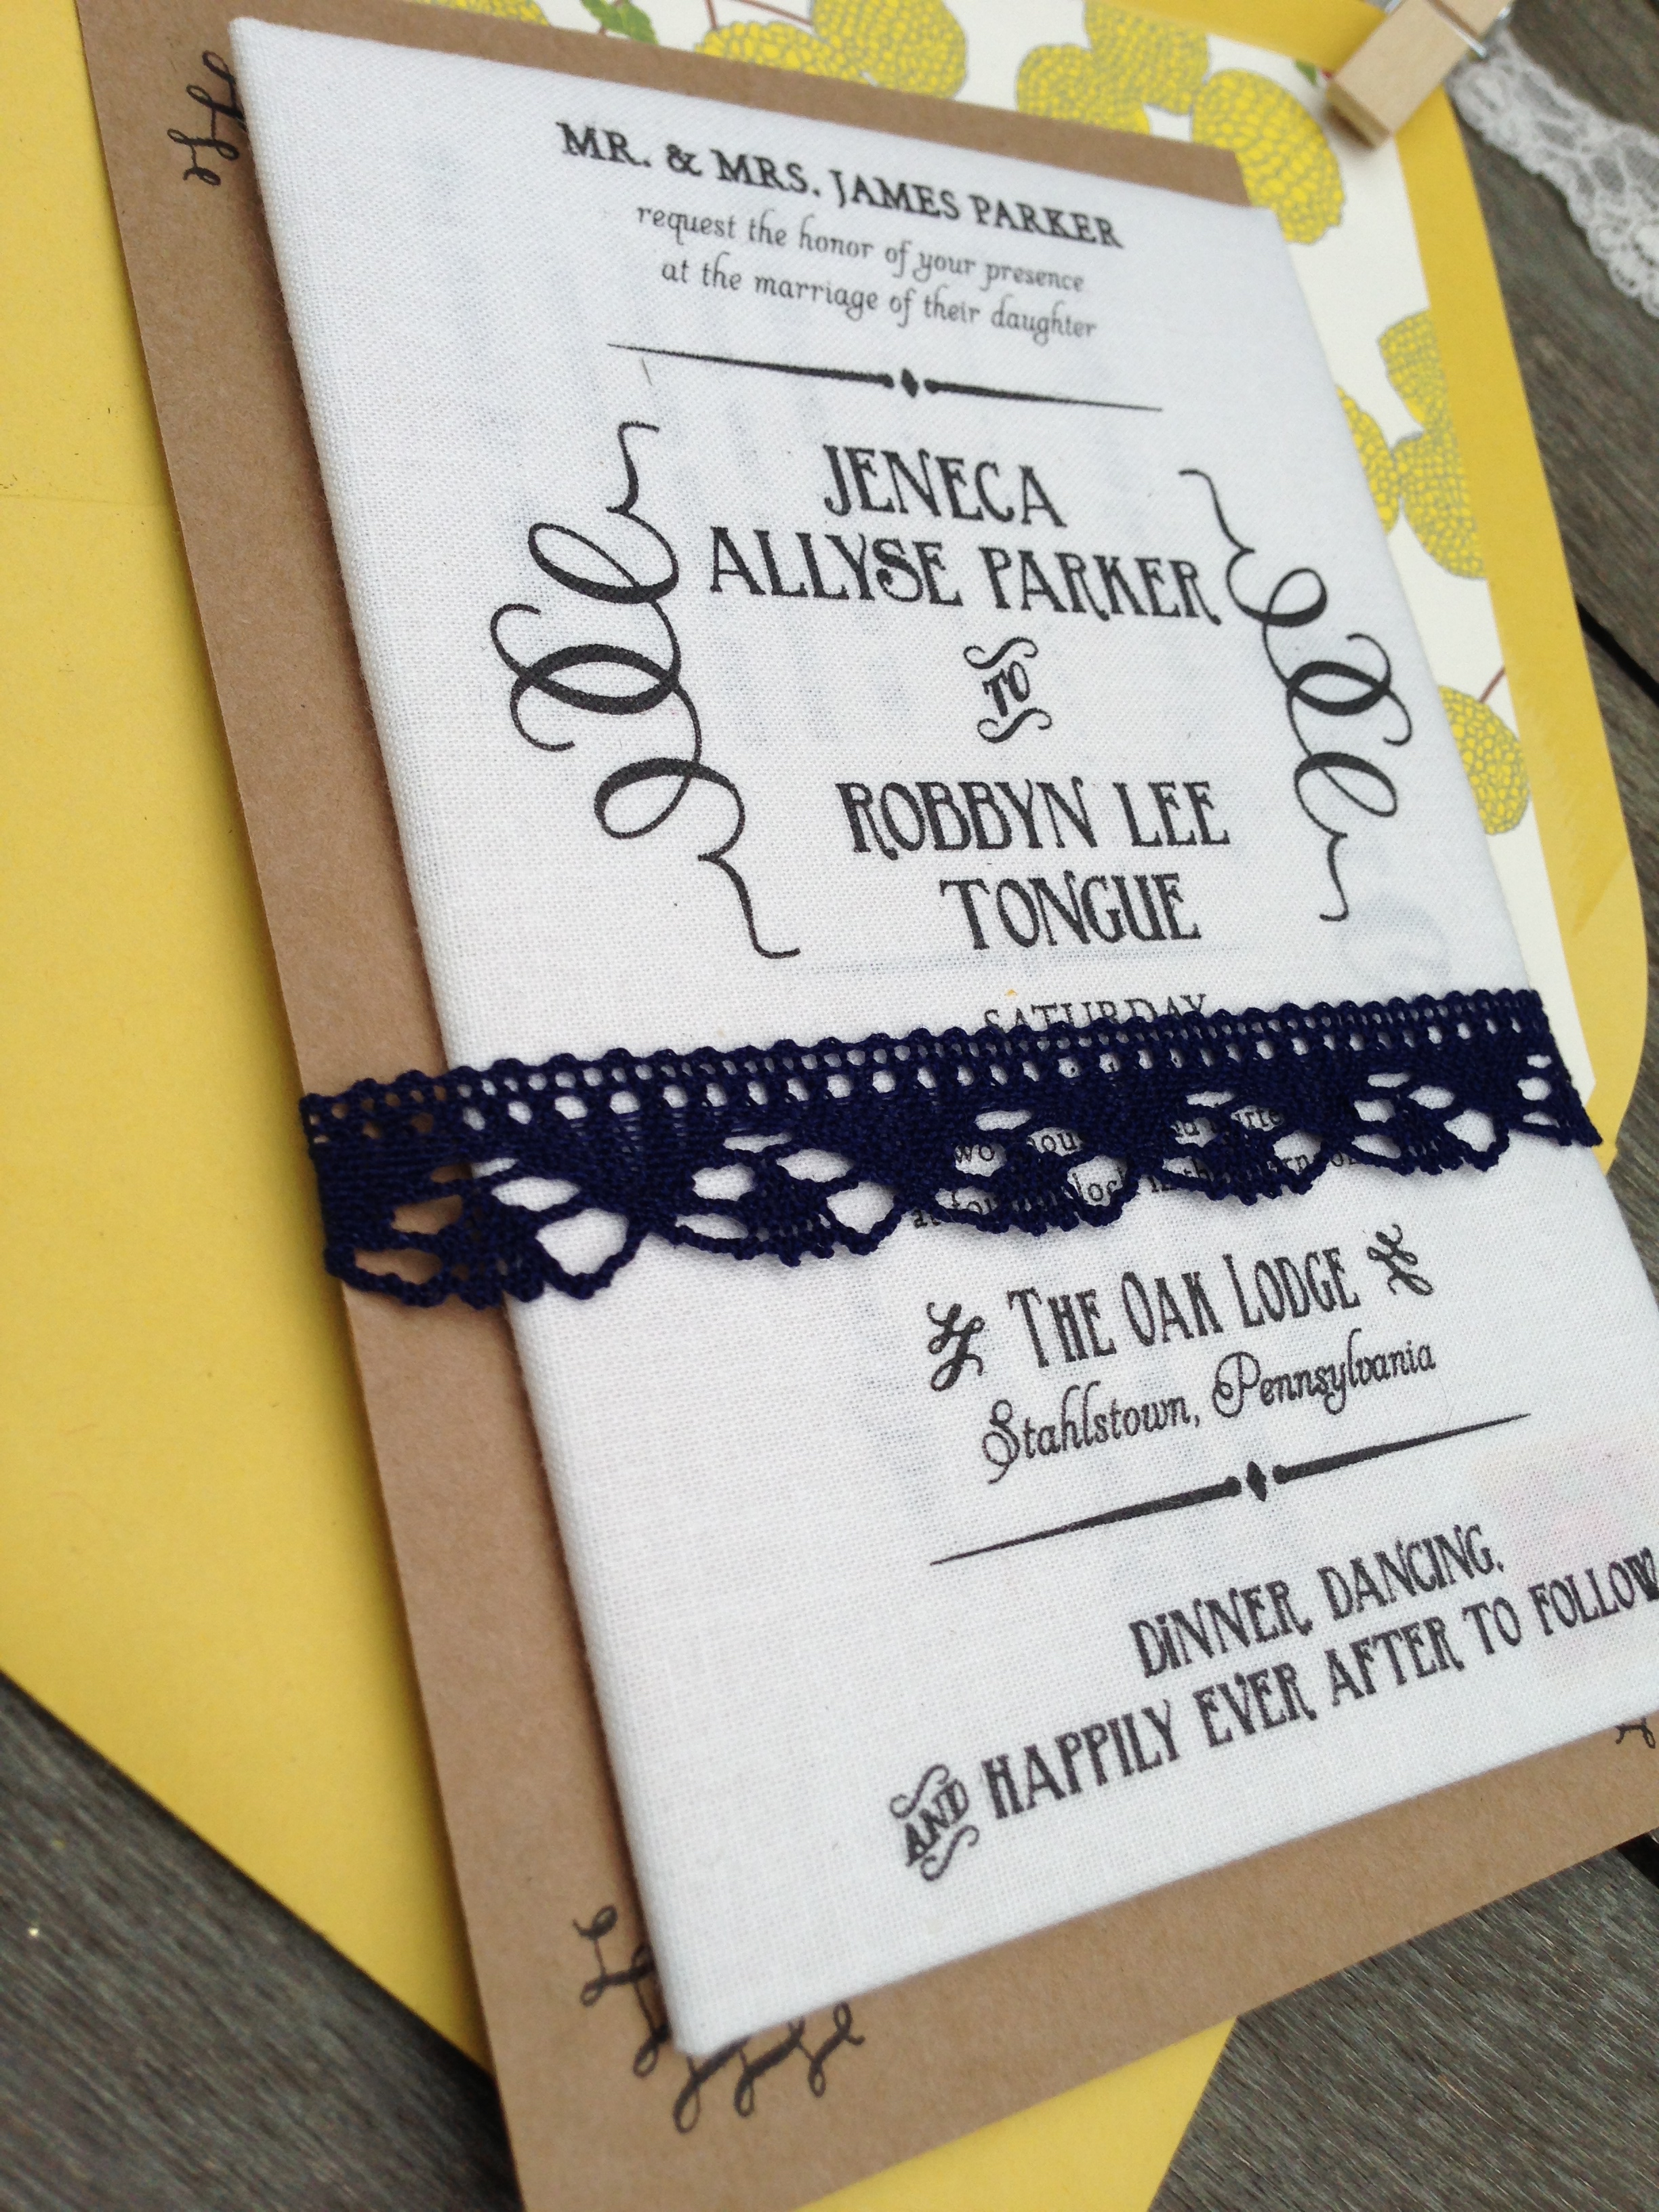 The fabric invitation was folded and wrapped around the other cards for wedding while a fun map provided the spine for the entire card pack.    We bound everything with a Chantilly lace wrap in navy blue.